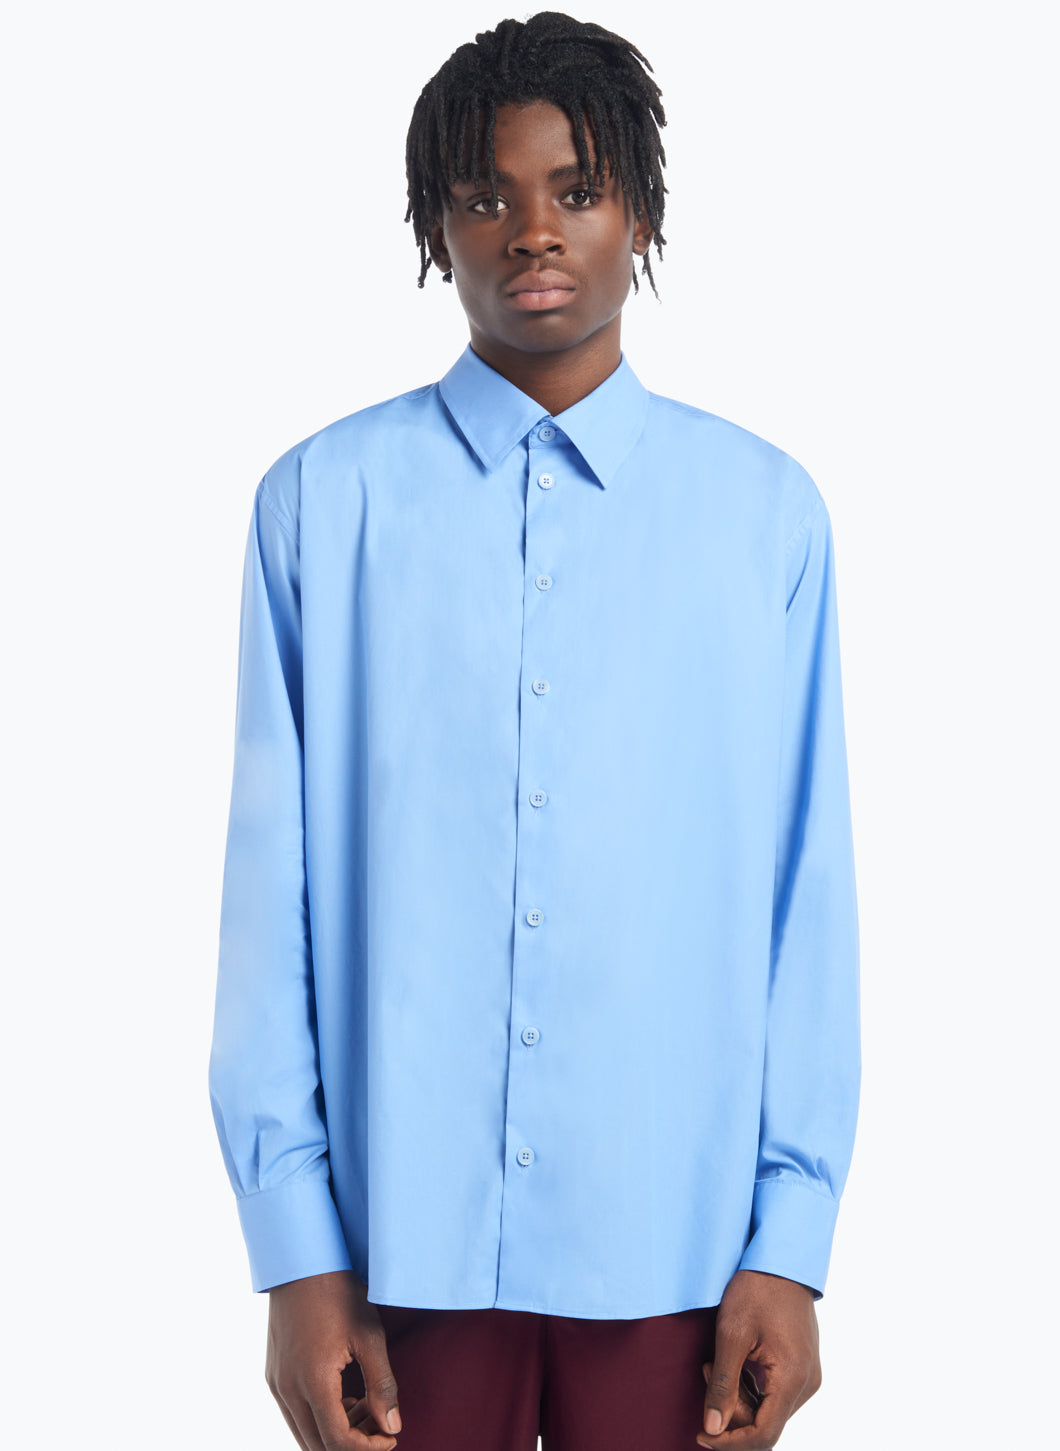 Classic Collar Shirt in Light Blue Poplin